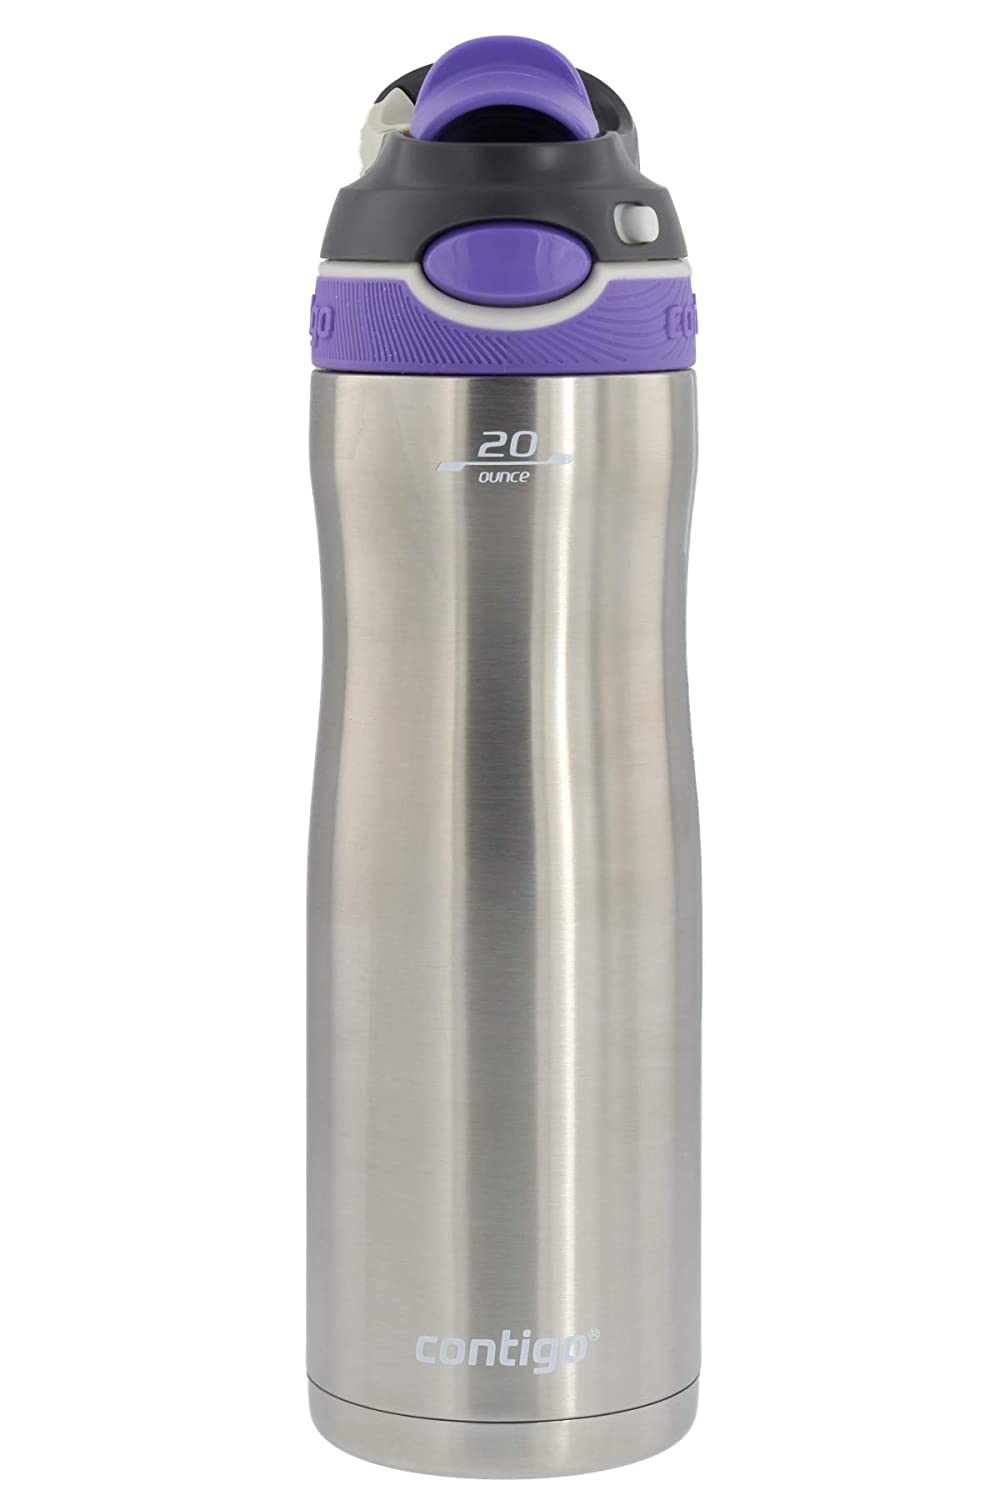 Contigo Autospout Chug Chill Stainless Steel Water Bottle with Vacuum Insulation - Ideal for Outdoor Lifestyles, Travel, Gym - BPA-Free, Leak-Proof, Carry Handle & Spout Cover, 20oz - Grapevine